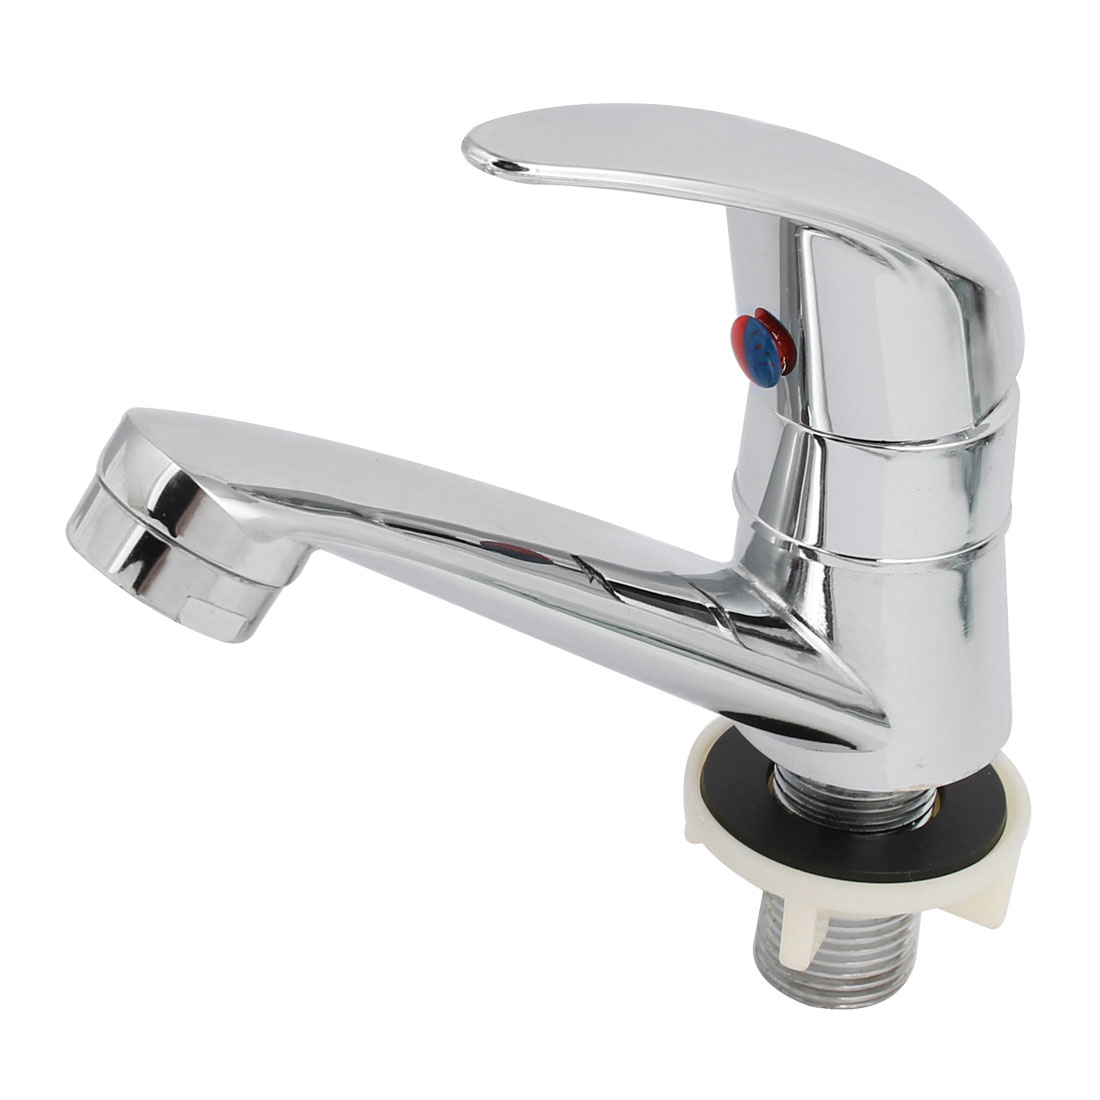 Kitchen Bathroom Stainless Steel Sink Basin Rotary Water Tap Faucet Switch